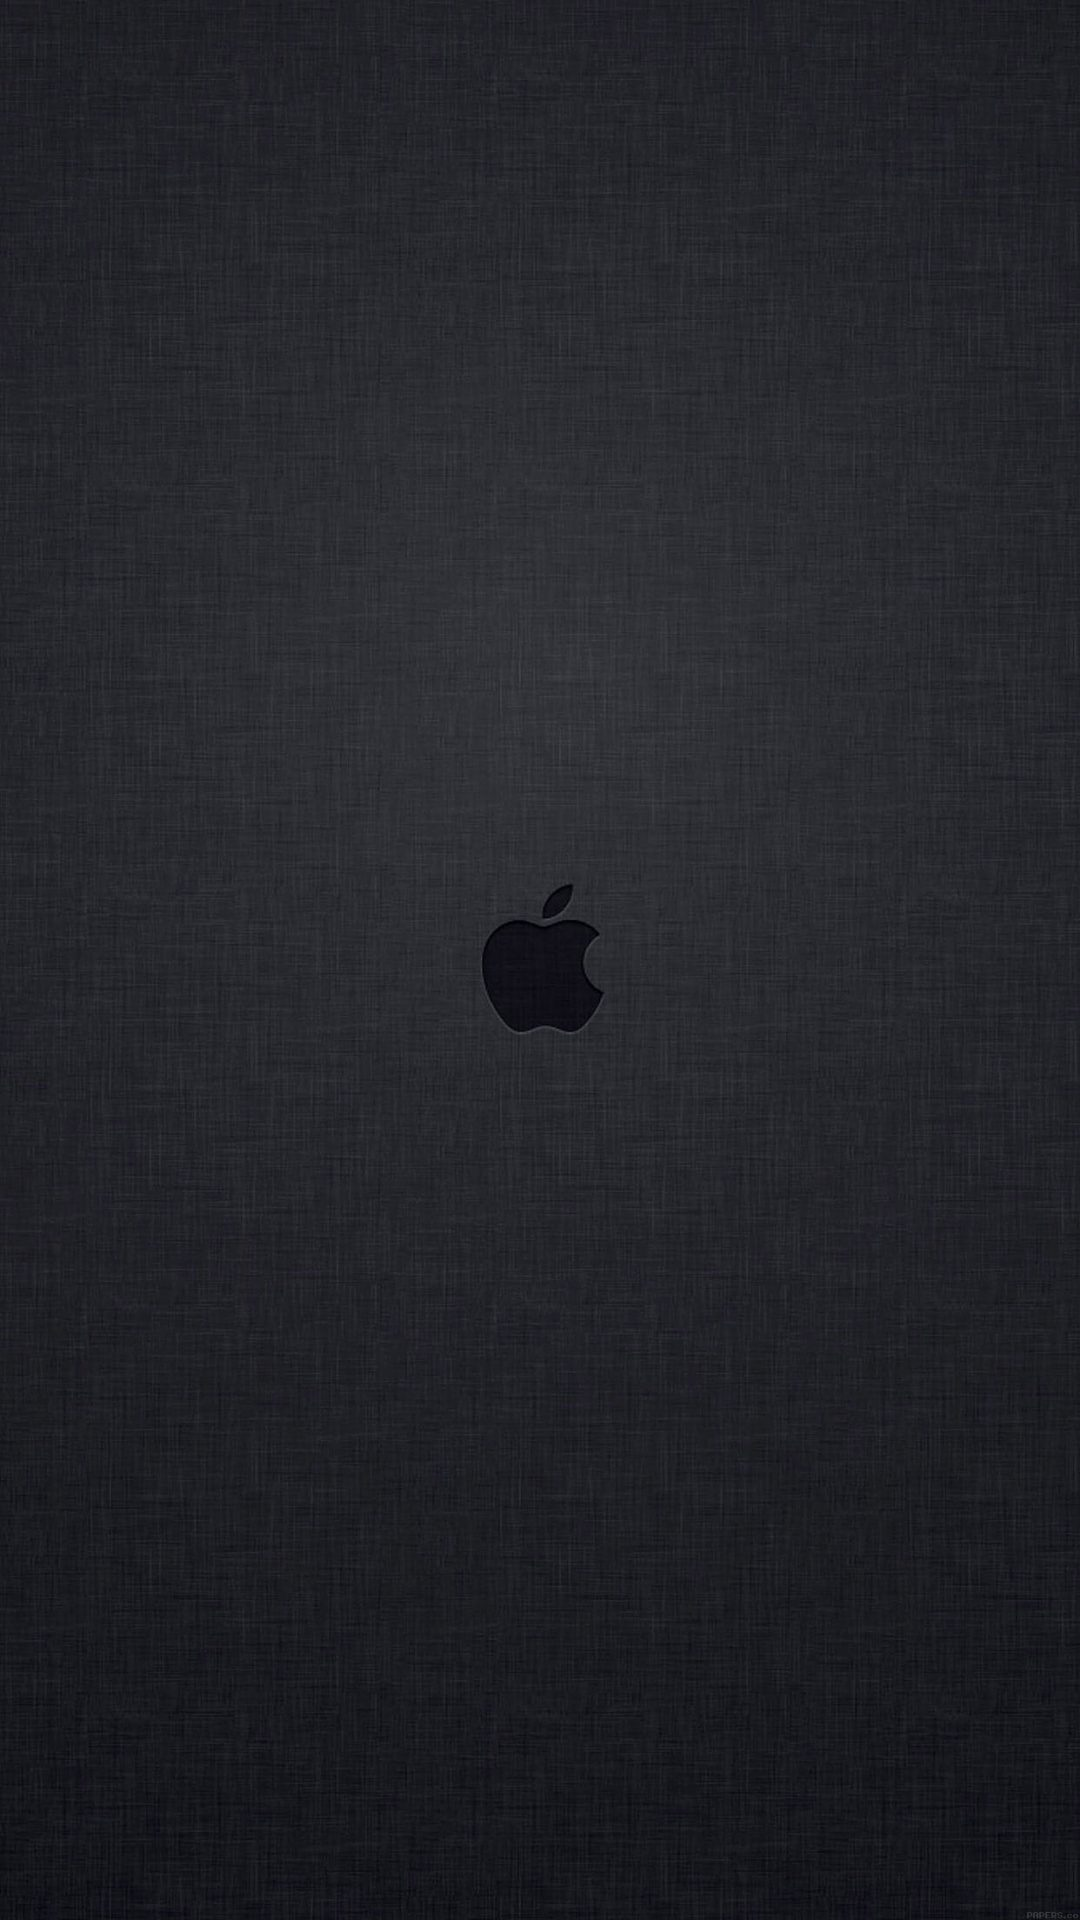 Wallpaper Tiny Apple Logo Dark Wallpapers For Iphone